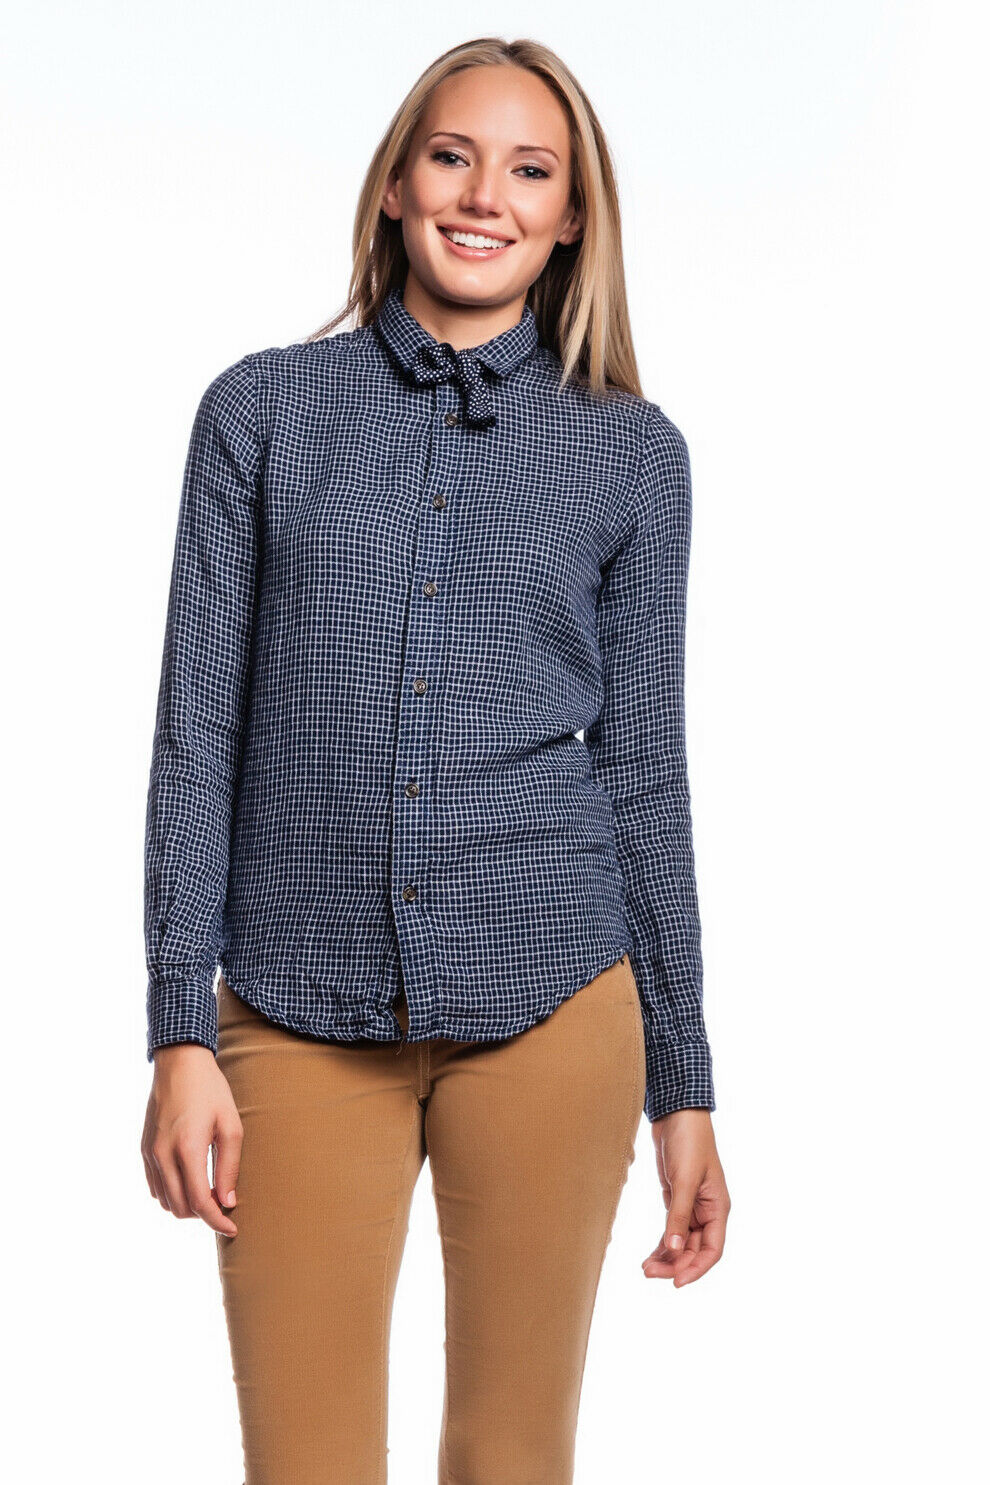 J.A.C.H.S. Lucy Shirt Blau Long Sleeves JACHS New Checkerot Button Down damen